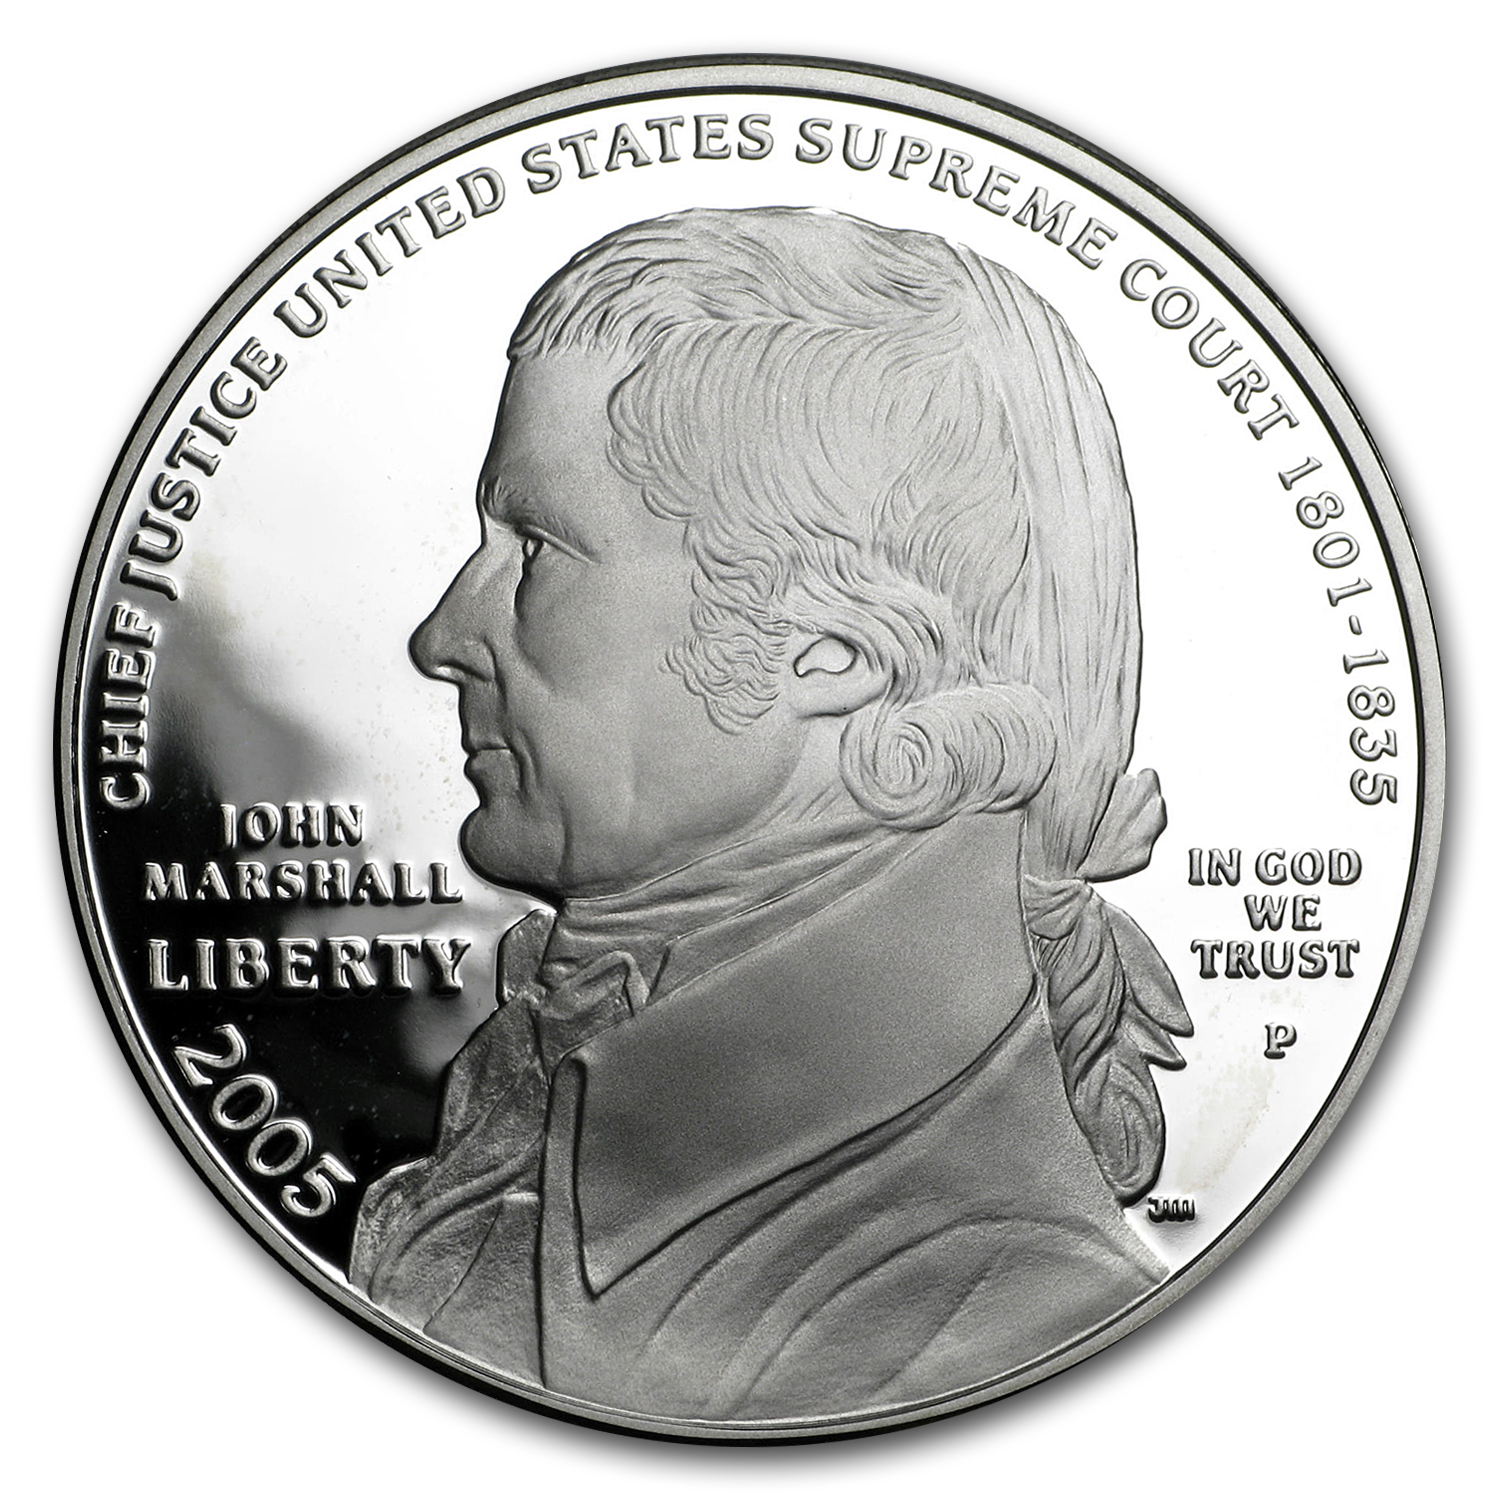 2005-P Chief Justice Marshall $1 Silver Commem Proof (Capsule)